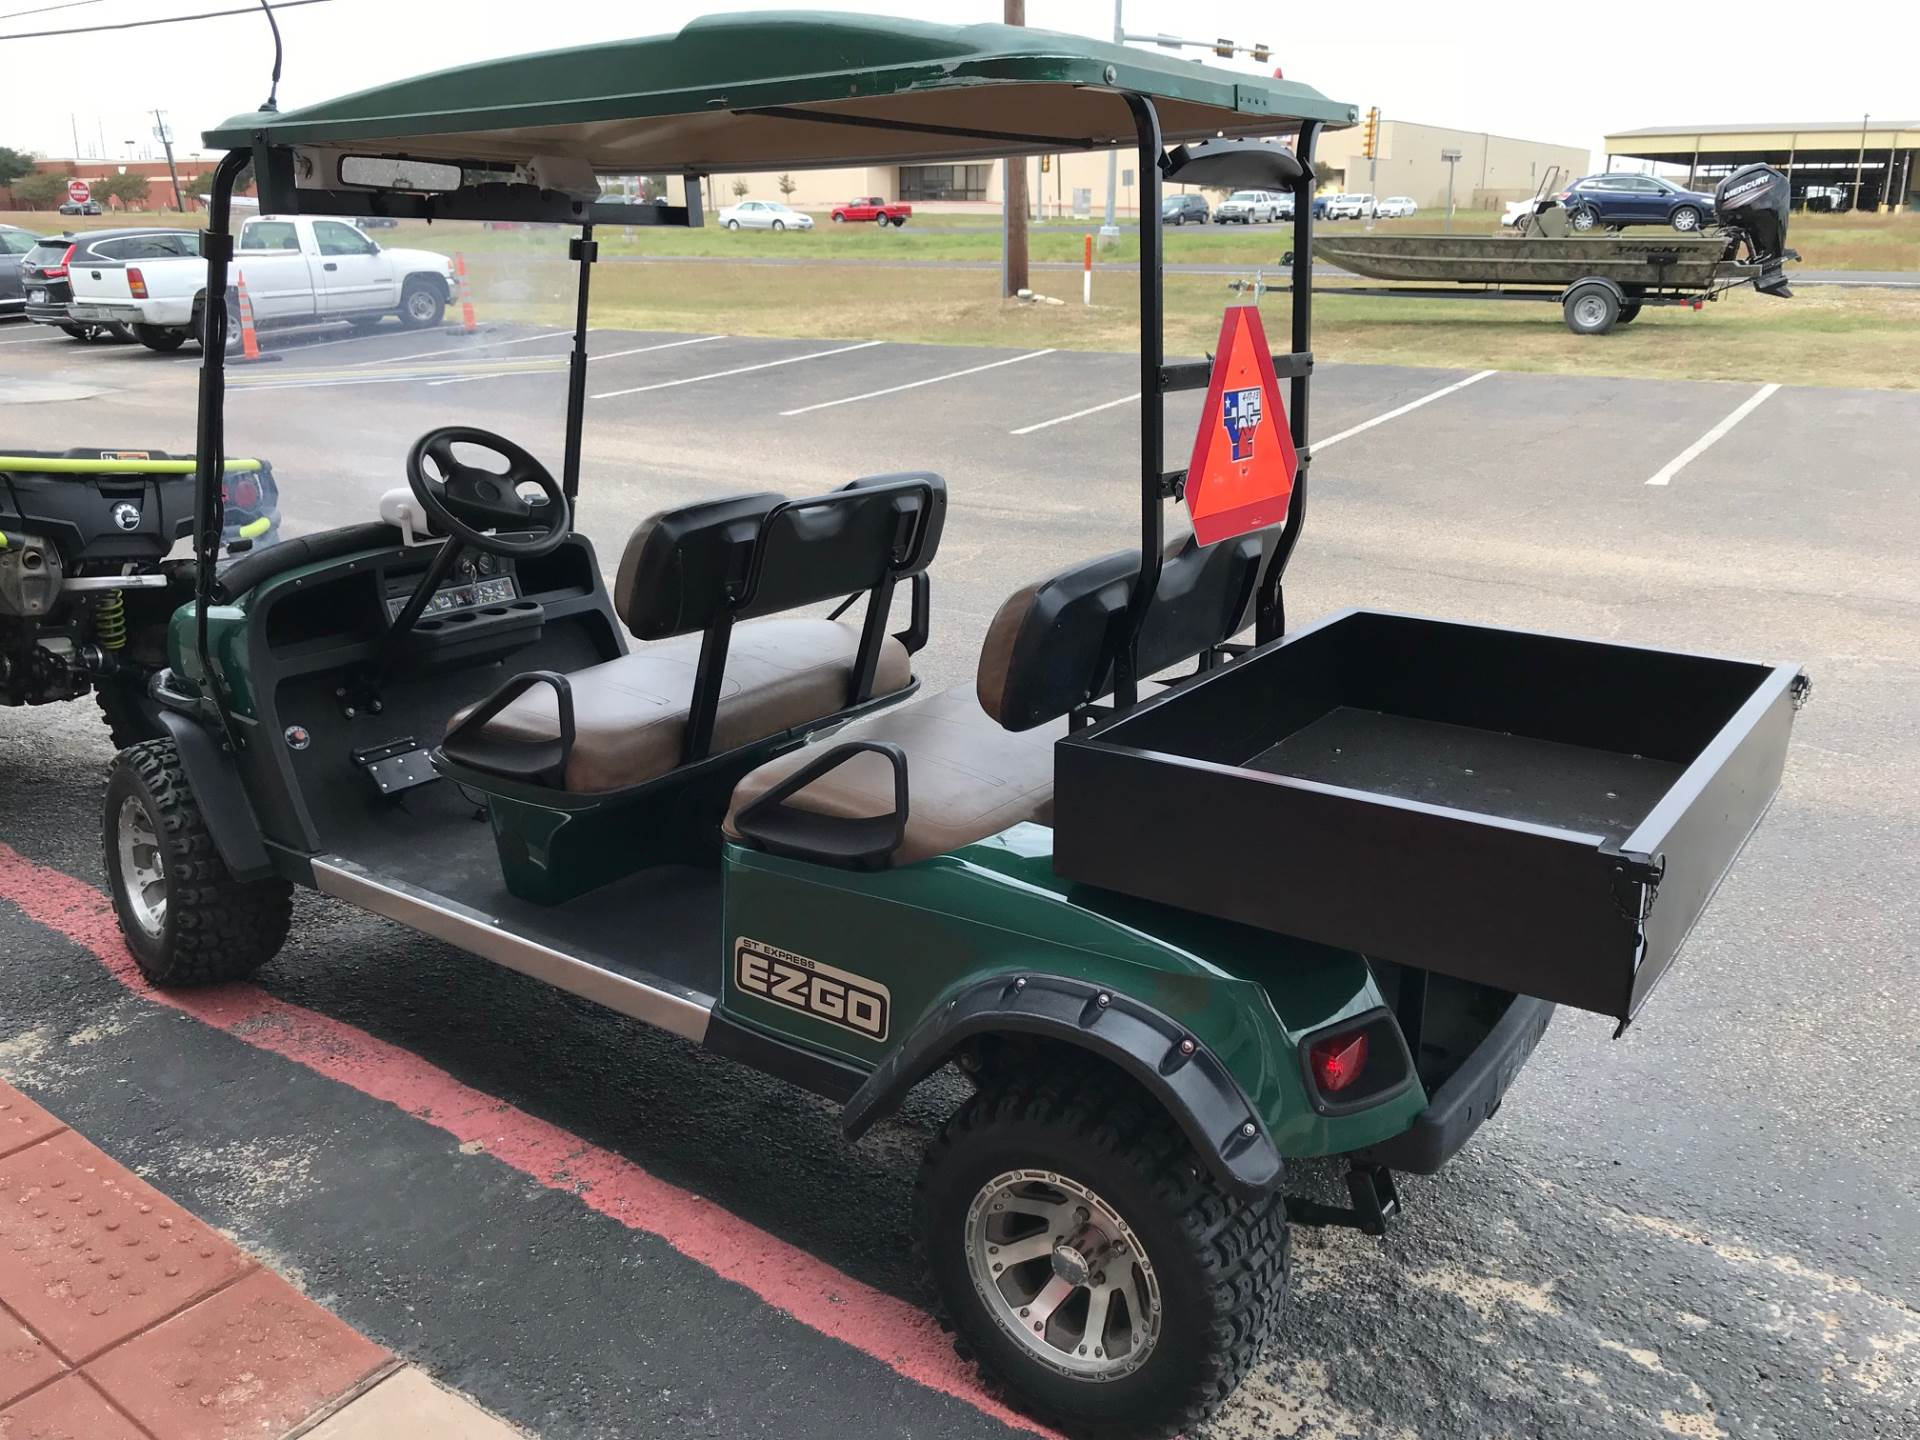 2009 E-Z GO GOLF CART S6 CREW in Waco, Texas